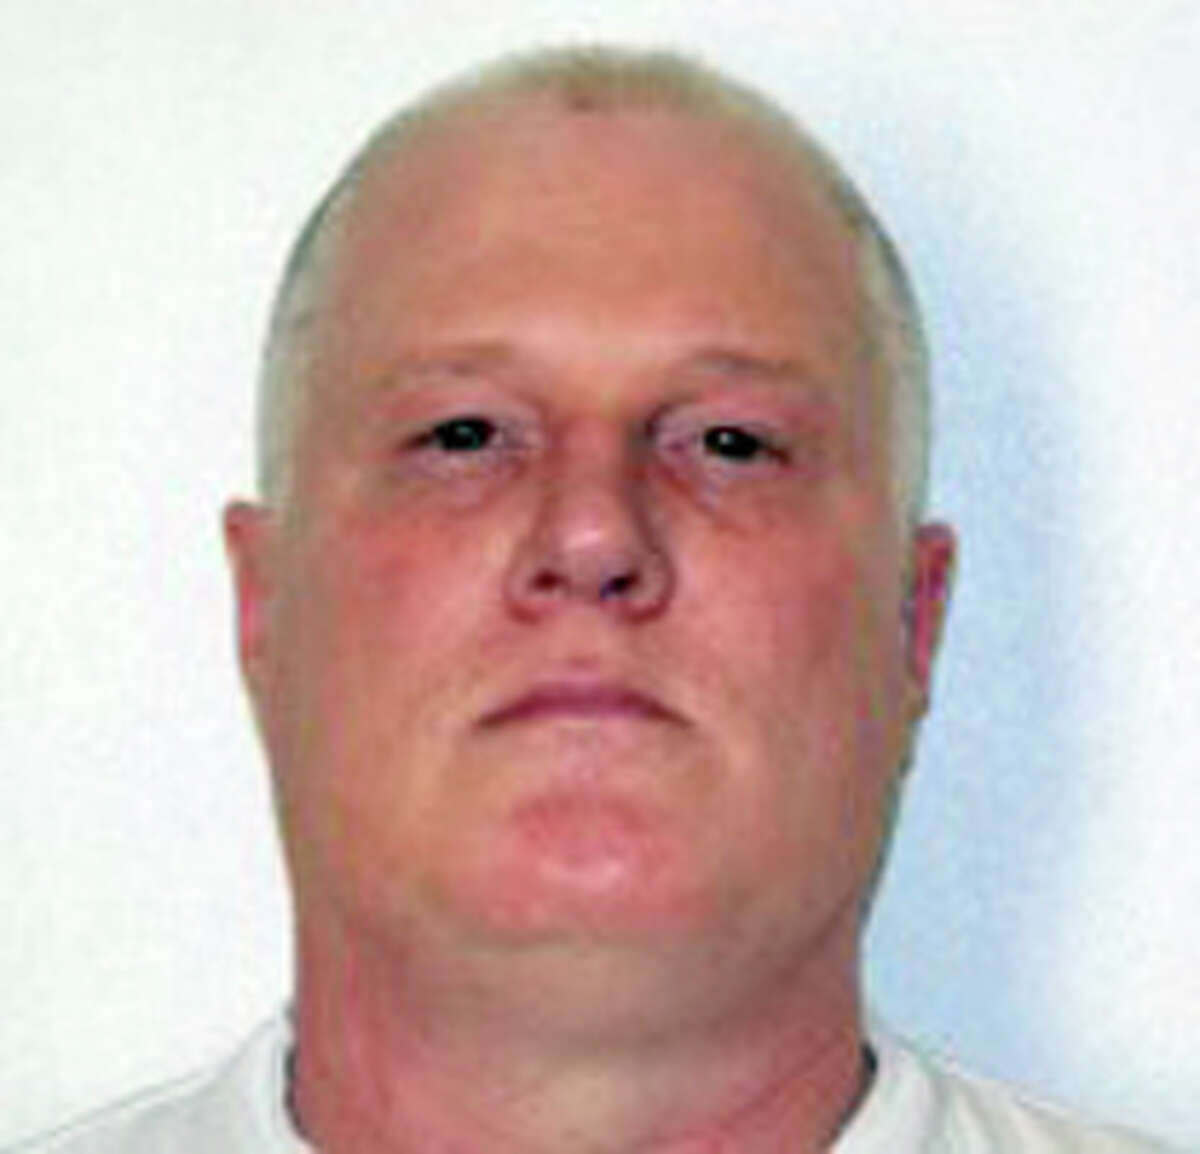 This undated handout photo provided by the Arkansas Department of Correction shows Don William Davis. Arkansas will resume lethal injections after a 10-year gap in October 2015 with a double execution. Davis and Bruce Earl Ward are scheduled to die Oct. 21. Davis was sentenced to death for the 1990 killing of Jane Daniels in northwest Arkansas. (Arkansas Department of Correction, via AP)